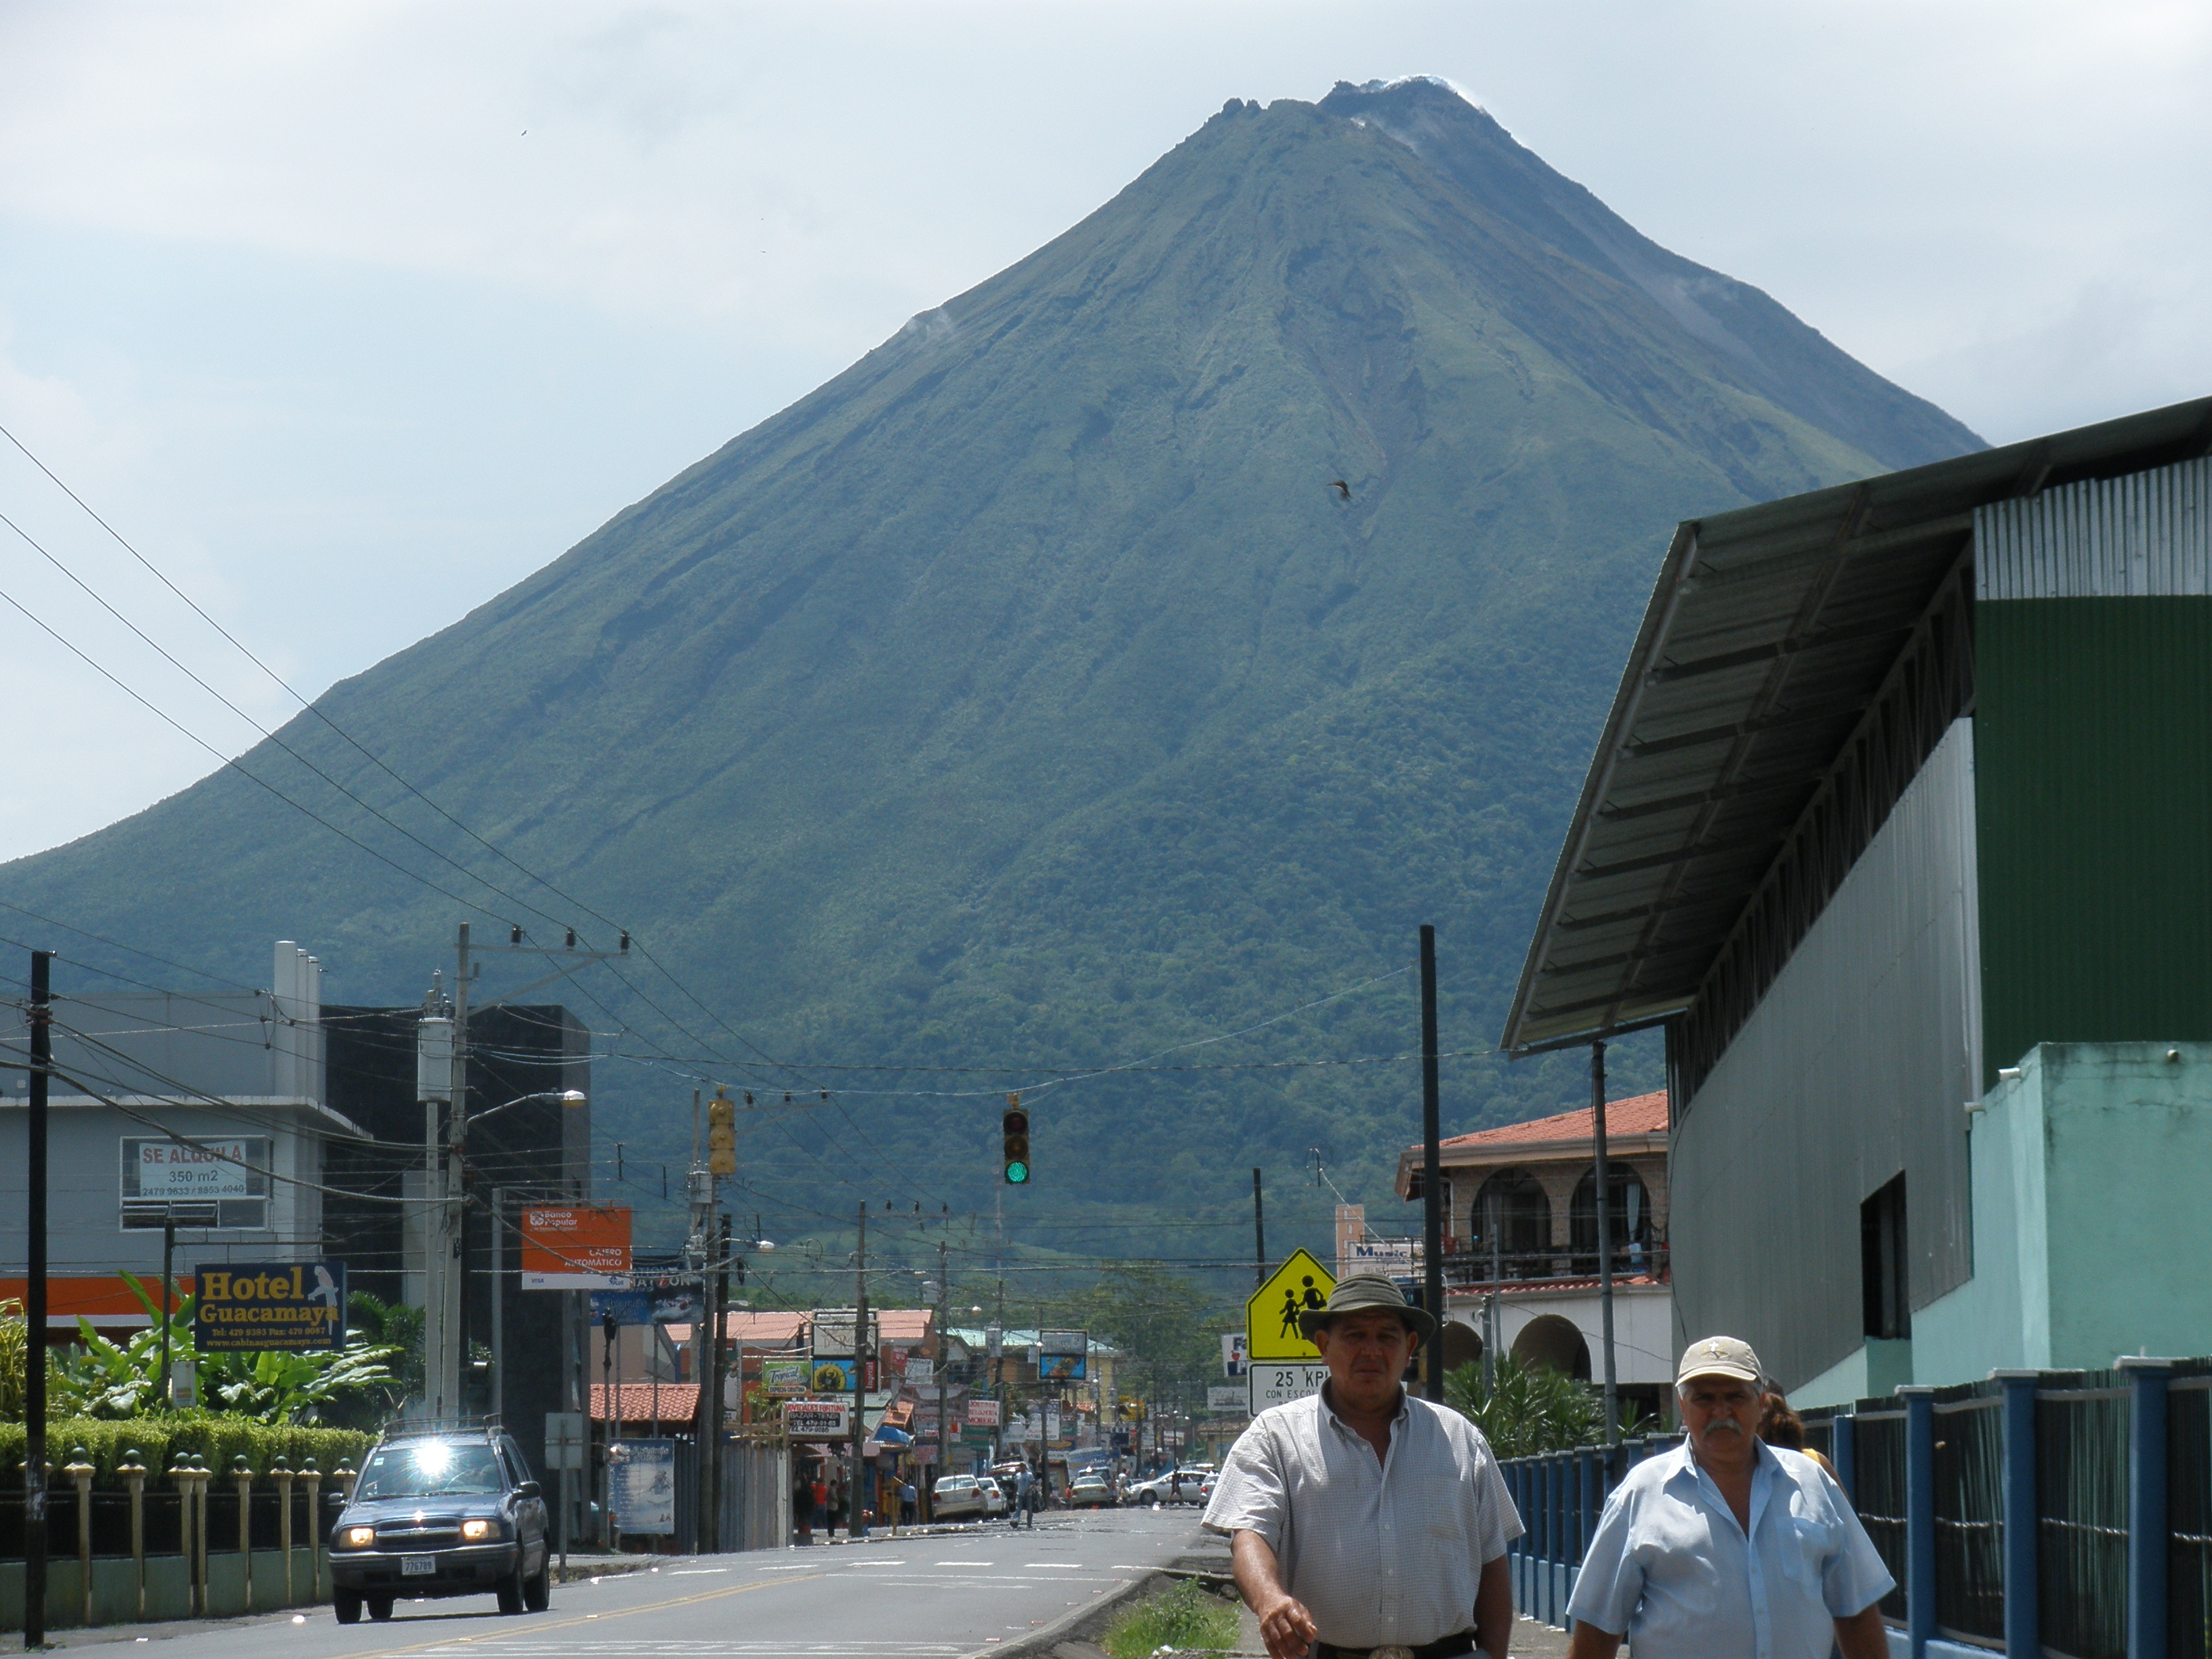 Daytime view of Volcan Arenal from La Fortuna